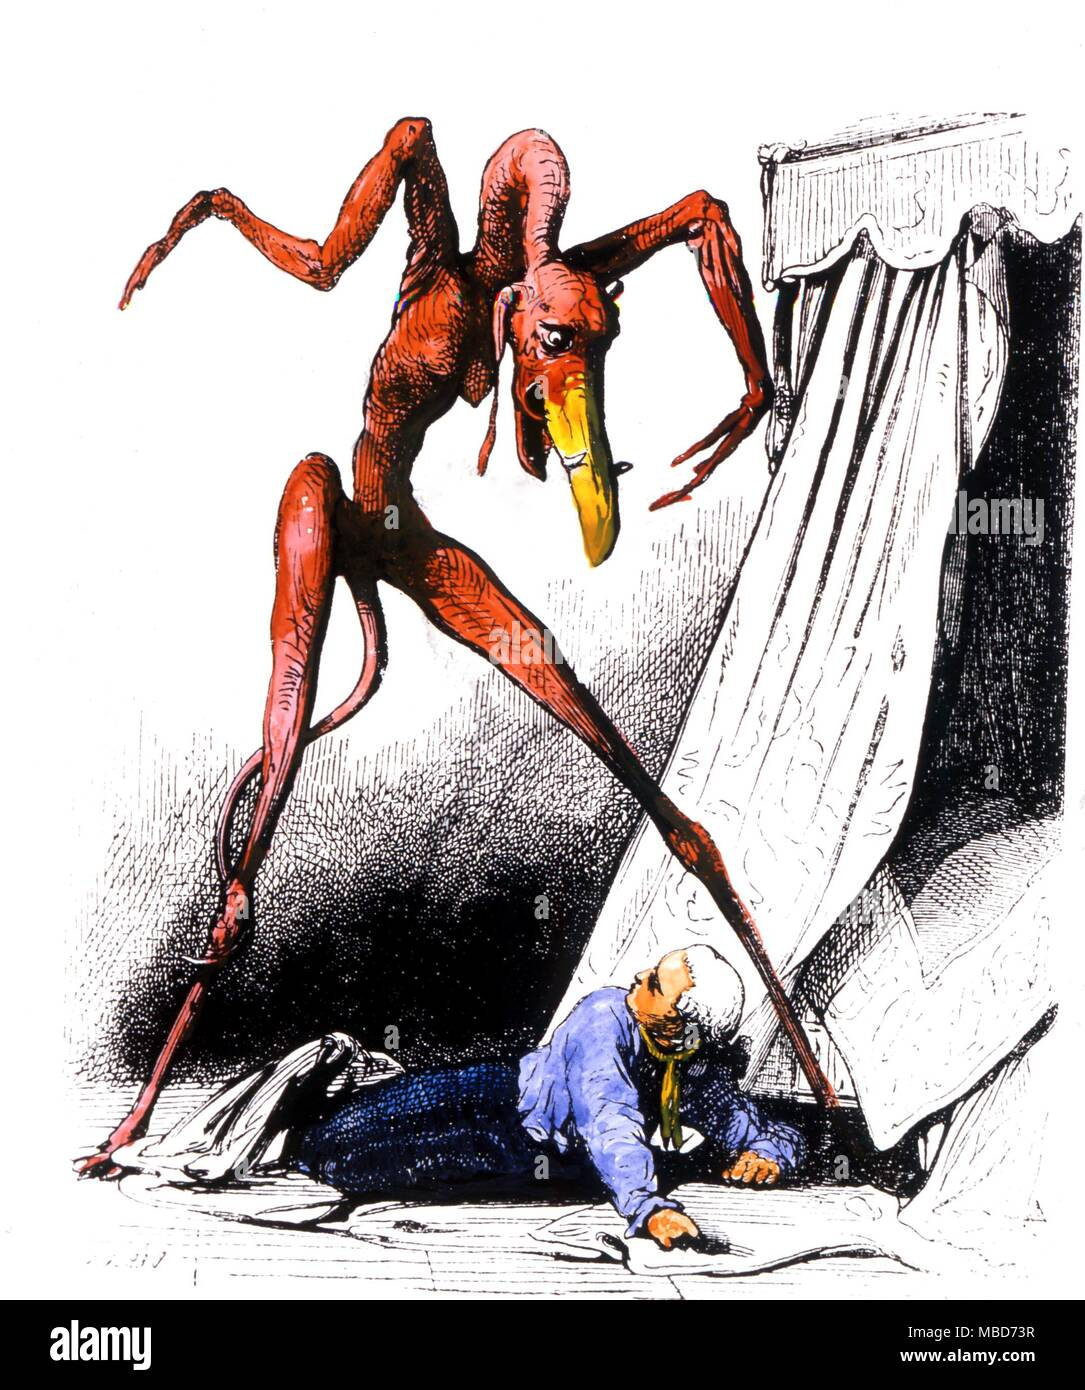 Demons - Nightmare demon used as a woodengraving by Collin de Plancy in his Dictionnaire Infernal of 1863 but derived from a painting by Salvator Rosa - Stock Image